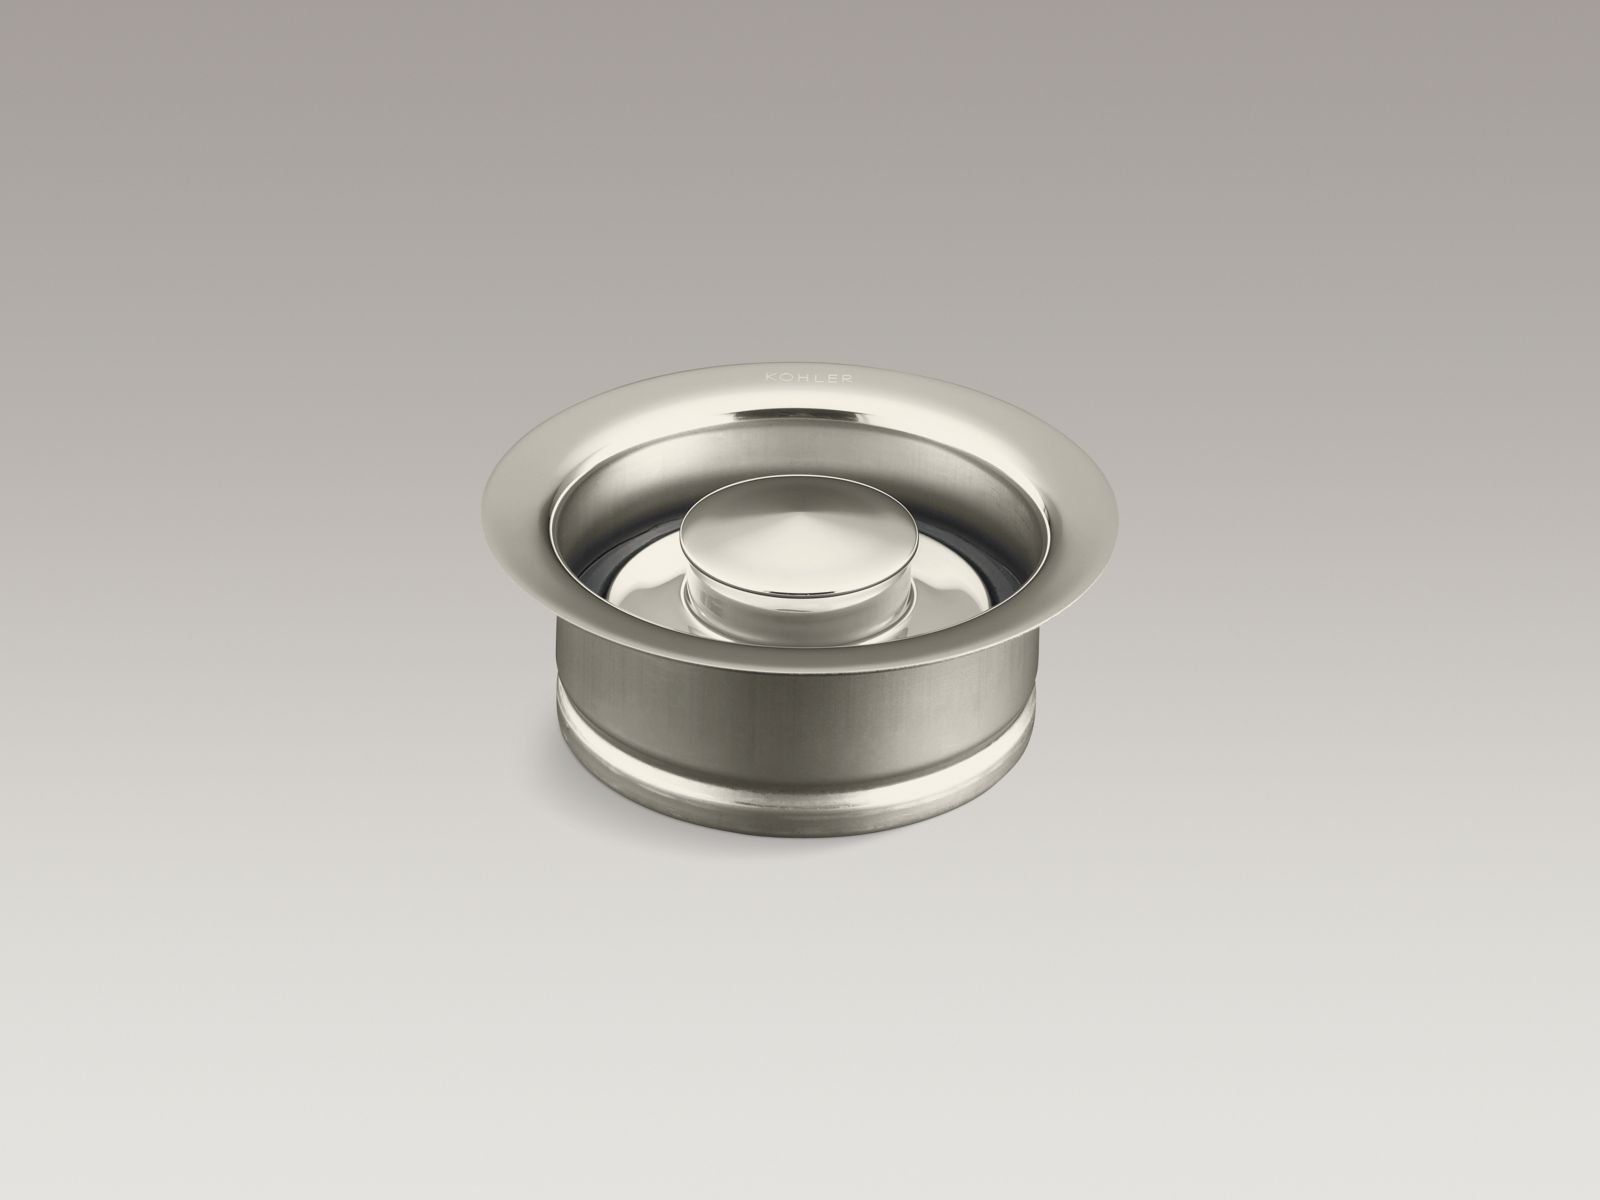 Kohler K-11352-SN Garbage Disposal Flange with Stopper Vibrant Polished Nickel